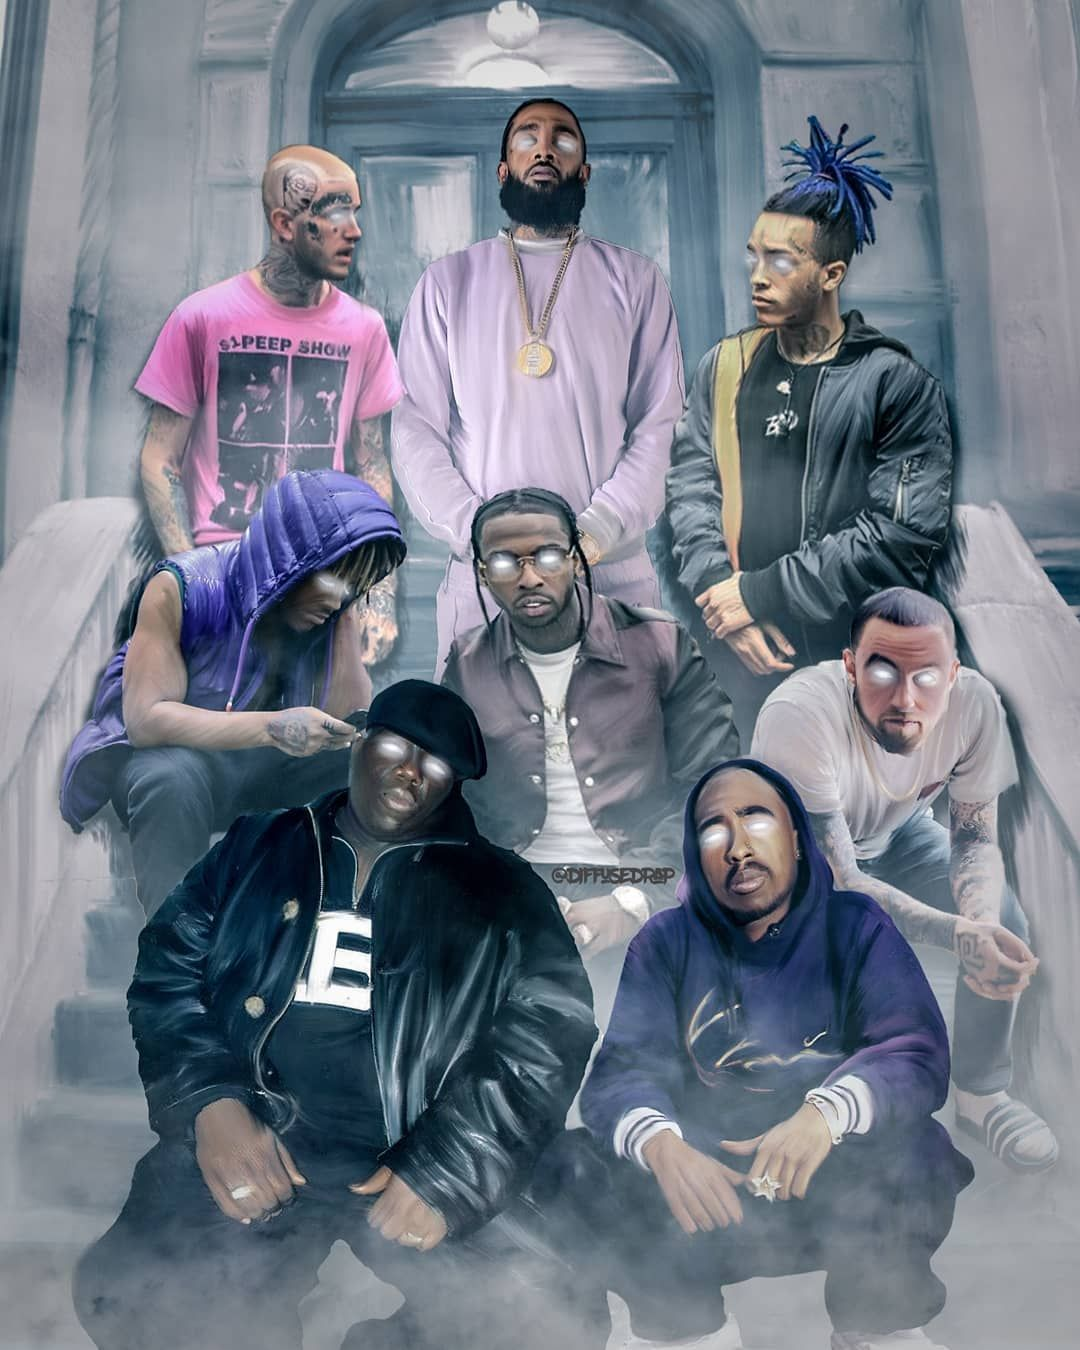 I Ve Been Meaning To Create A Piece Involving All The Recent Artists Who Have Passed Away As Well It Was How To Bring It In 2020 Rapper Art Hip Hop